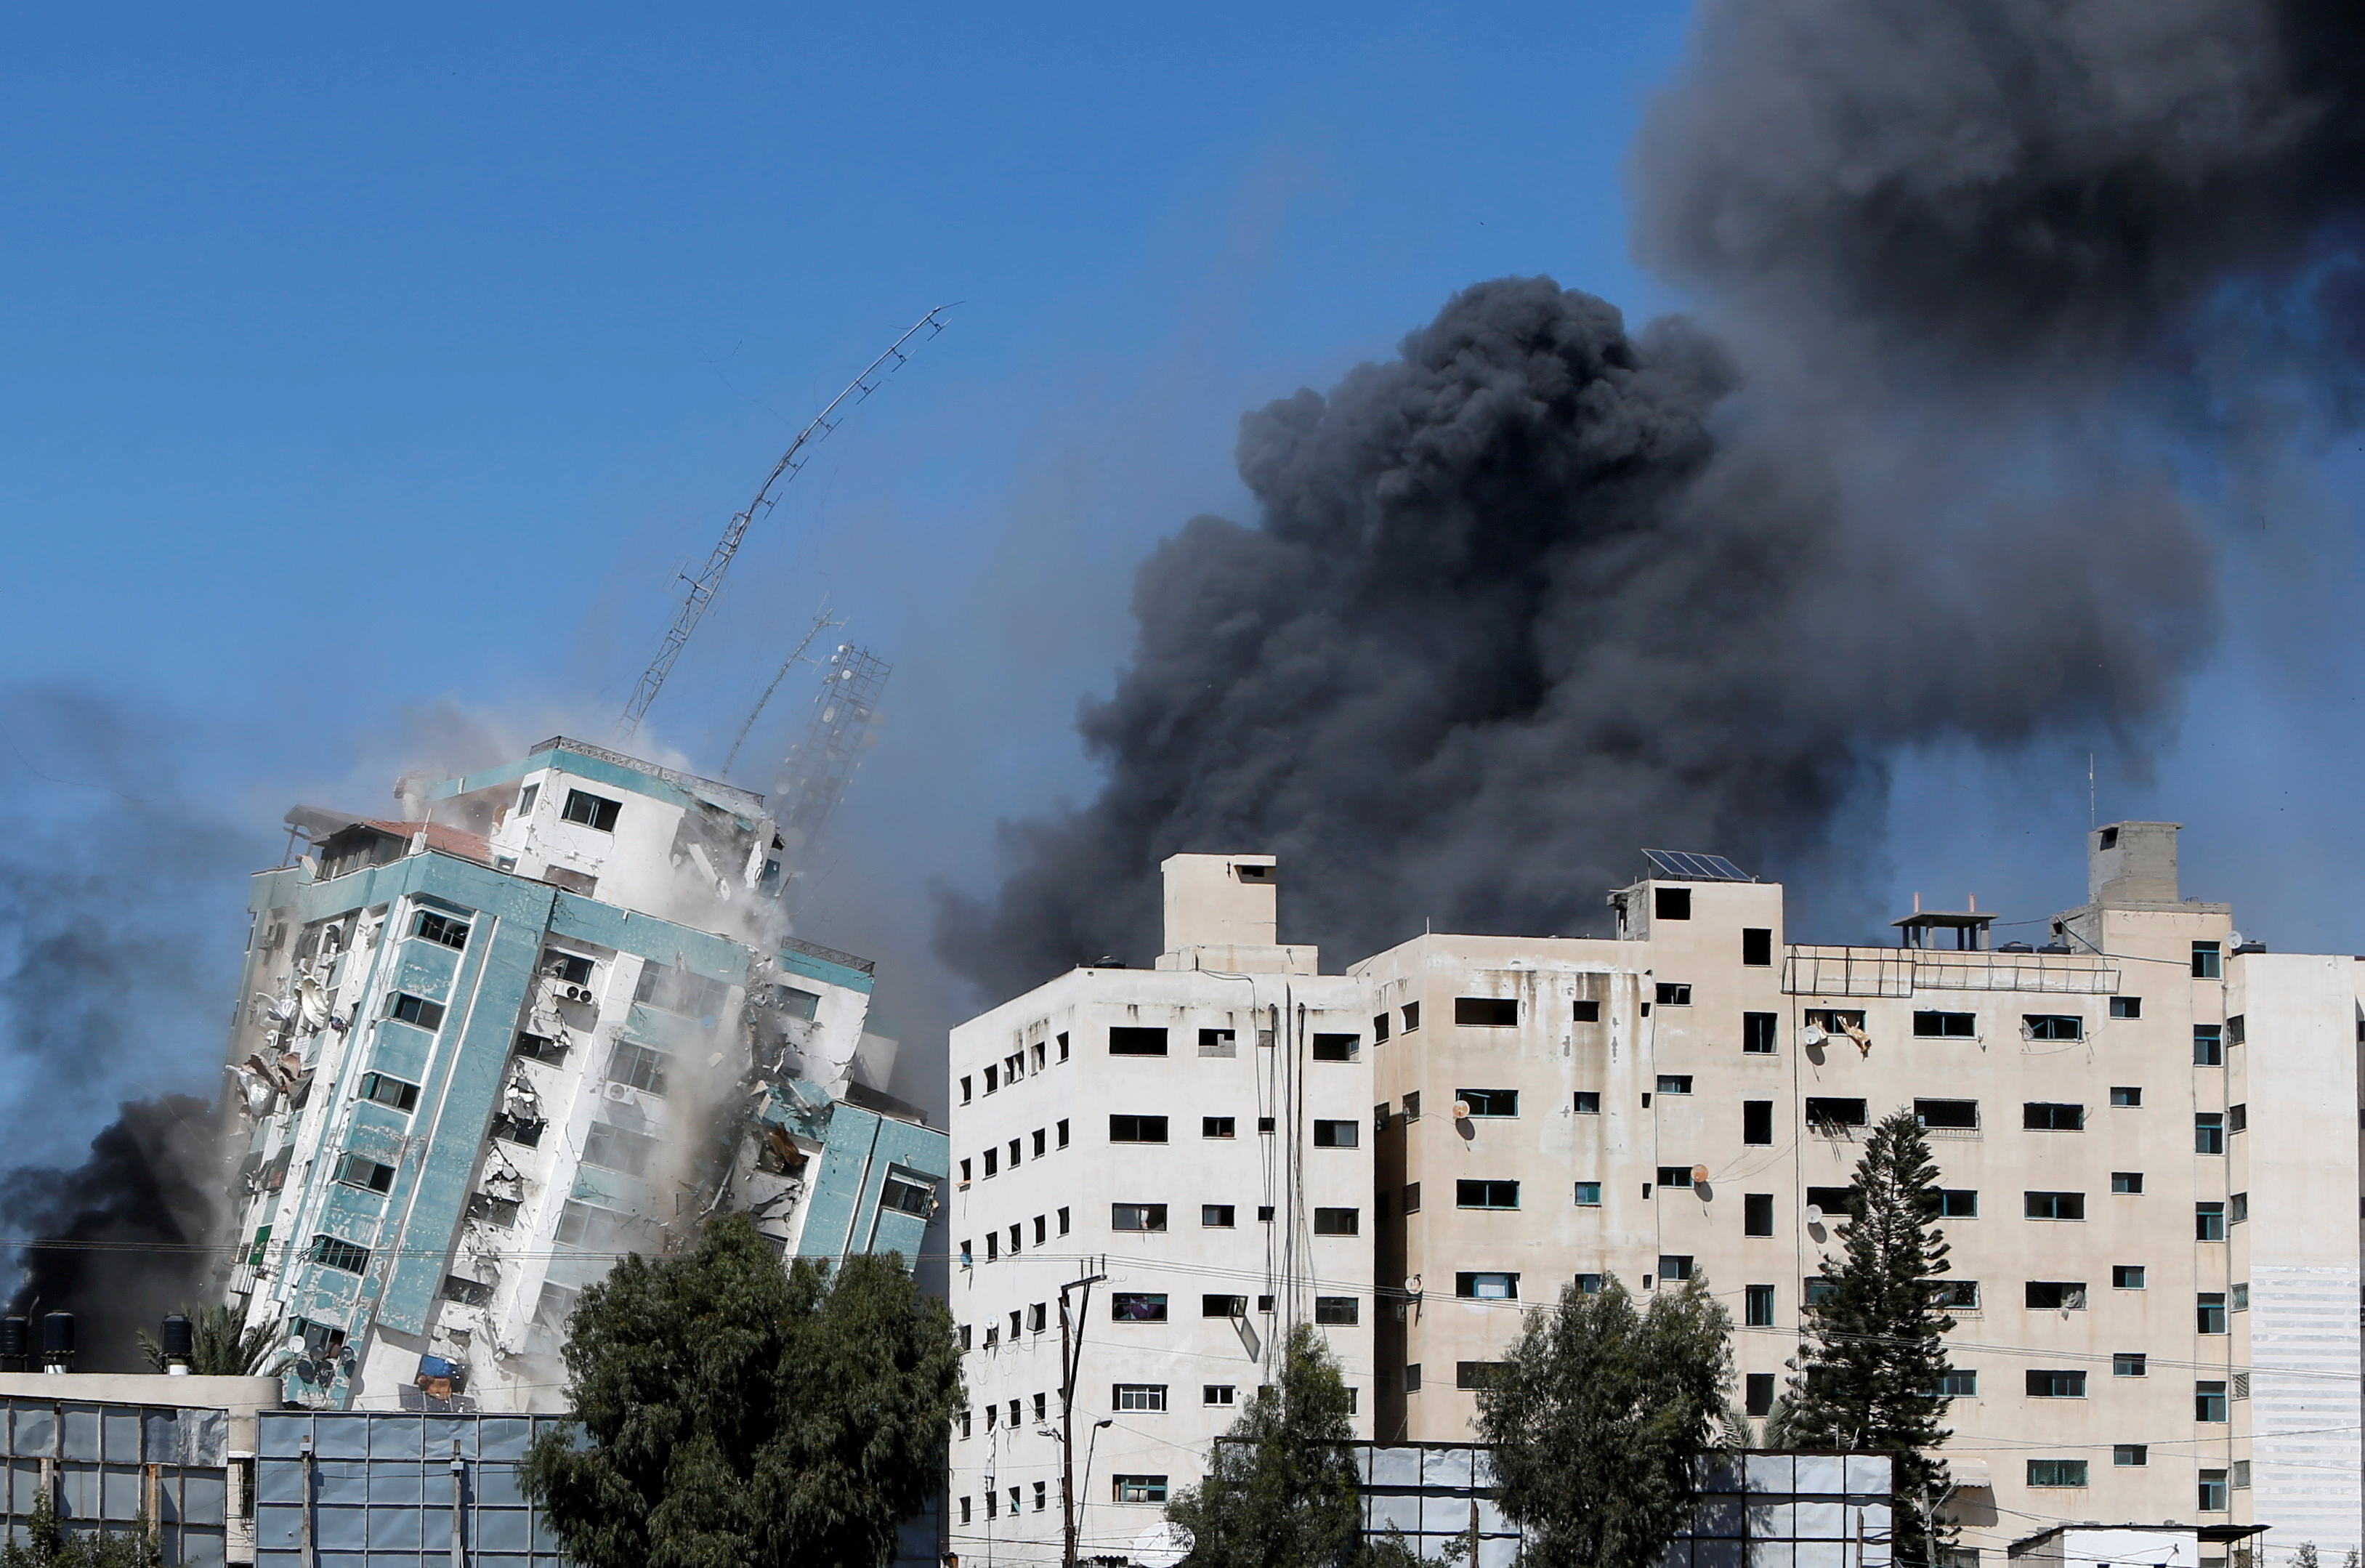 A tower housing AP, Al Jazeera offices collapses after Israeli missile strikes in Gaza city, May 15. REUTERS/Mohammed Salem